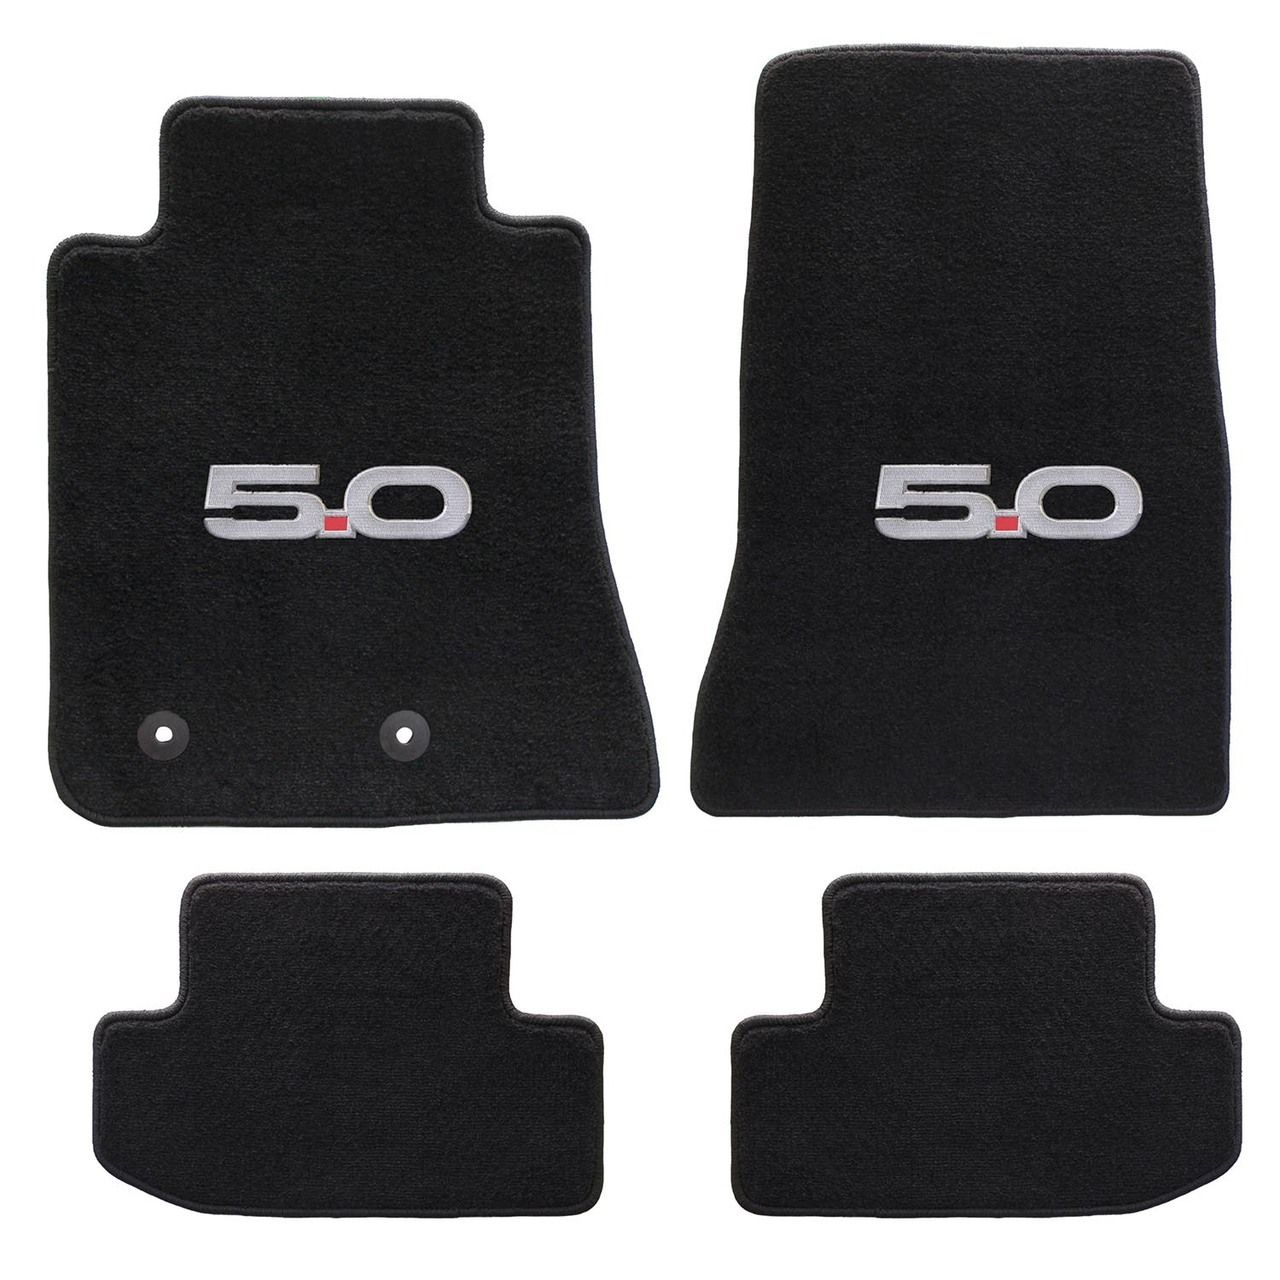 Ford Mustang 2015 On 4pc Mats Black 5 0 Logo Heavy Plush